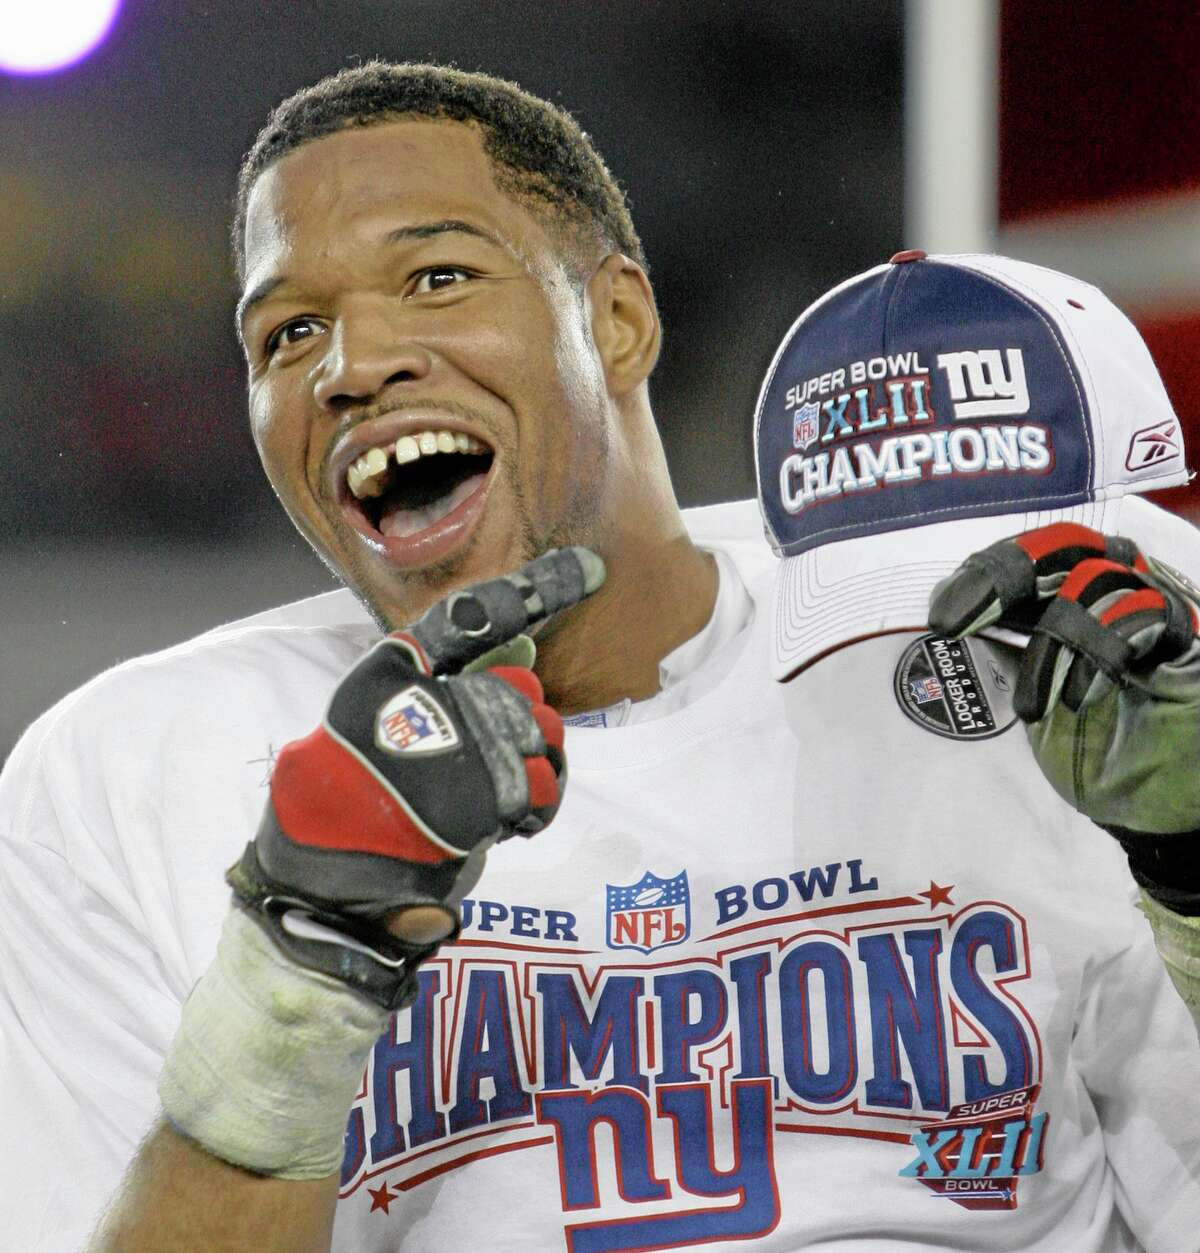 New York Giants defensive end Michael Strahan was a game-changer on the field, but he was also making his mark elsewhere with his gregarious personality, gap-toothed smile and willingness to step out of his comfort zone.